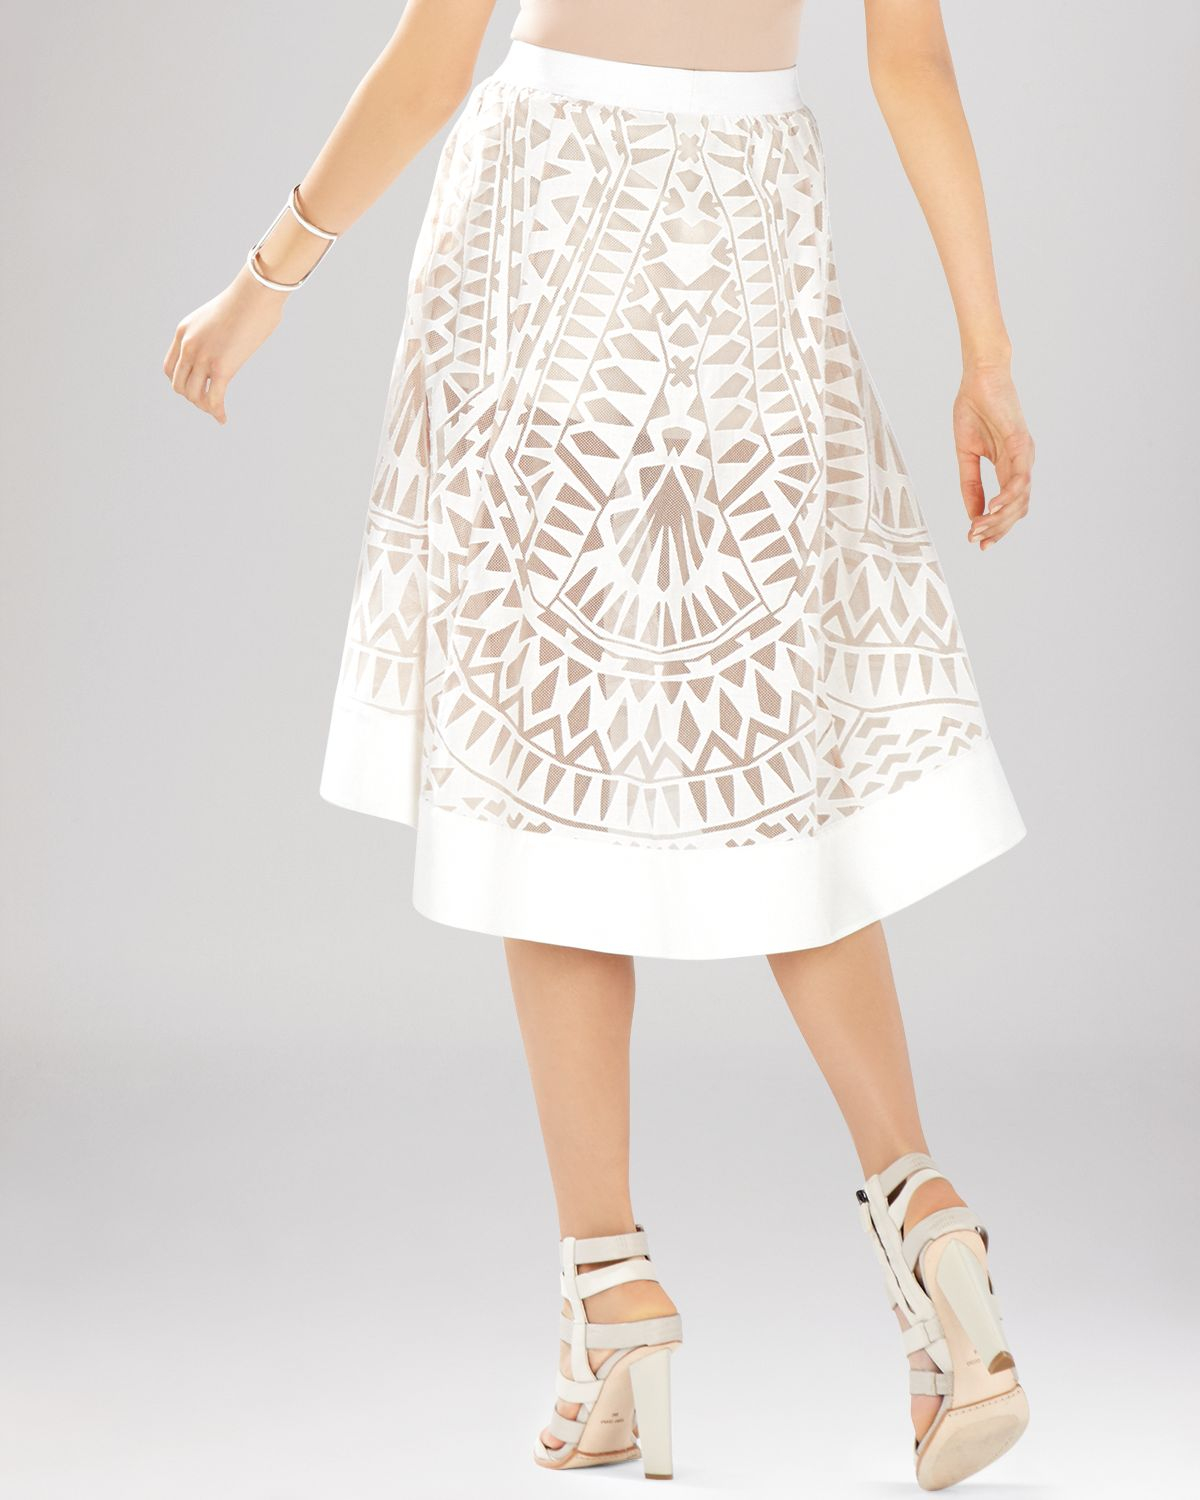 Lace White Skirt - Skirts